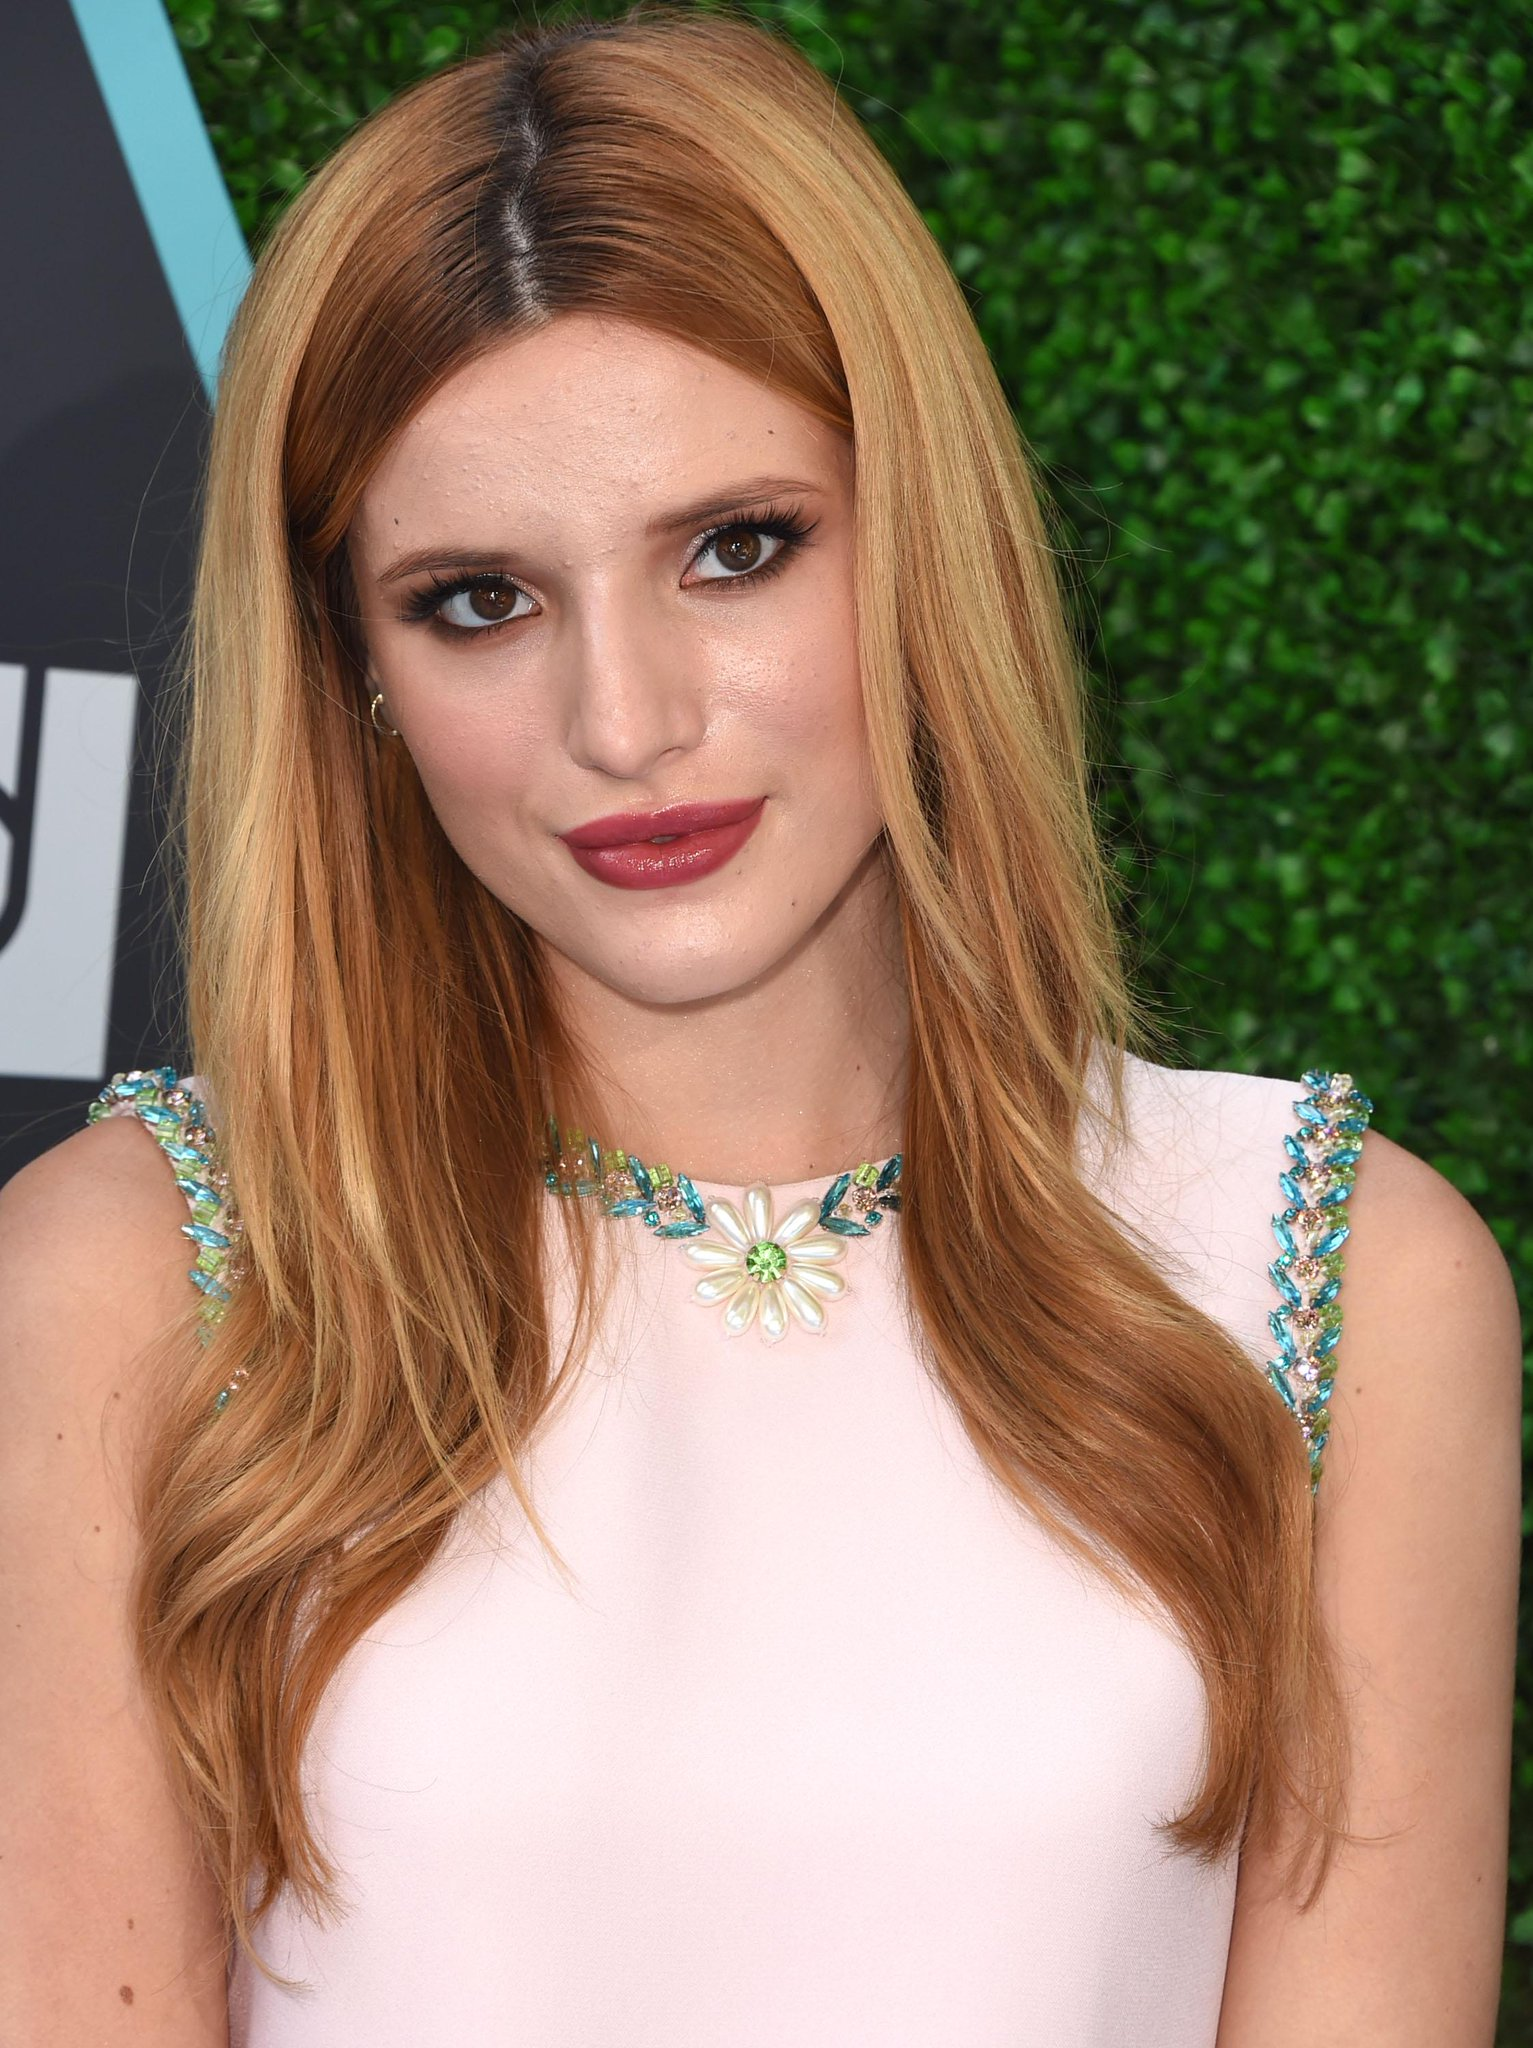 .@bellathorne's gorgeous berry-stained look is giving us #lipstick envy: http://t.co/gCbgWLYLpa http://t.co/fsmvDwG1LA